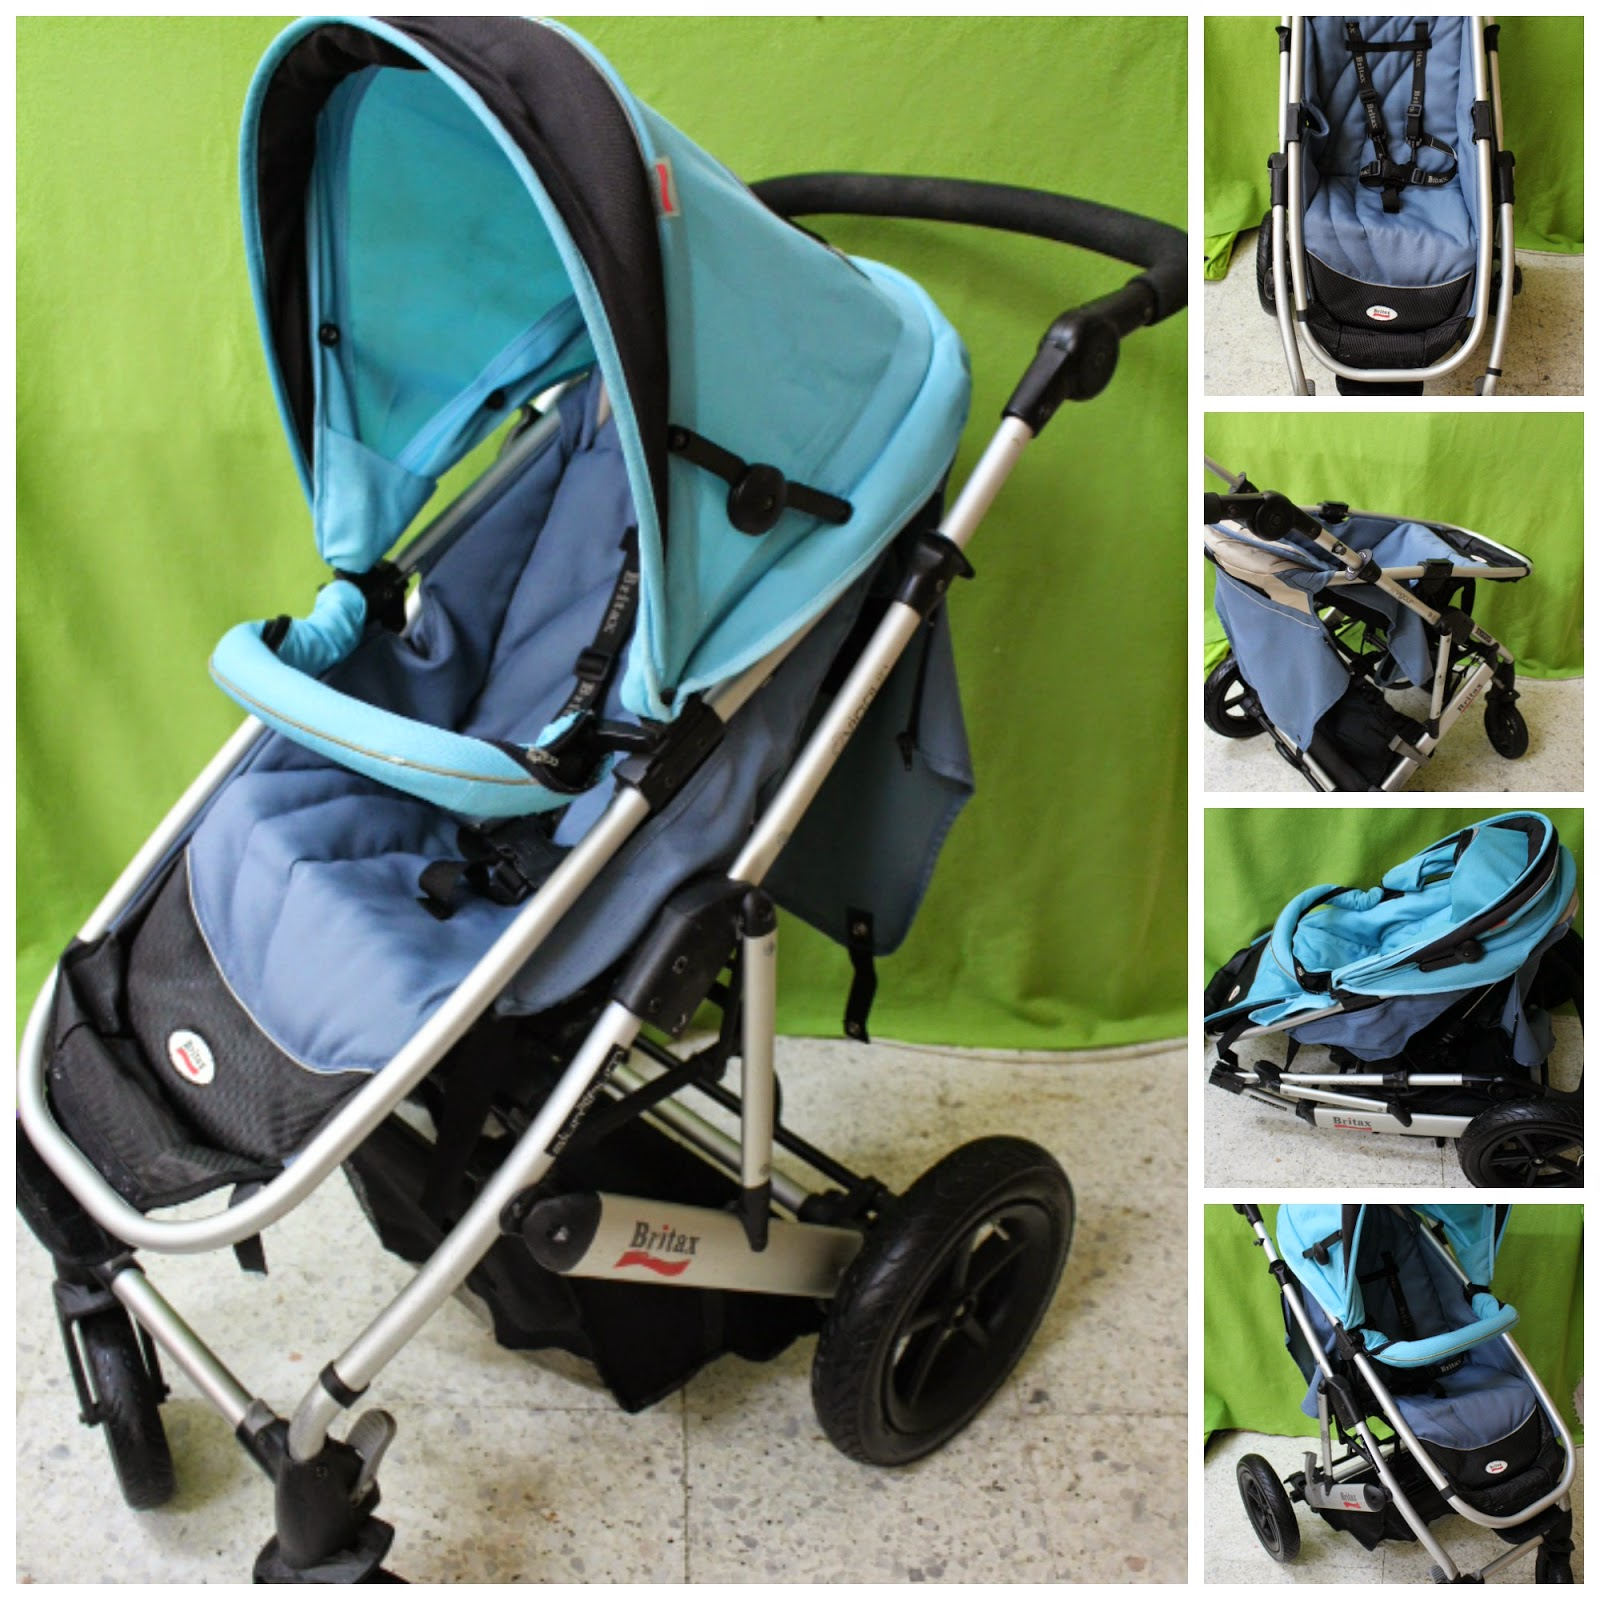 Amy Sweety Store Britax Vigour Stroller